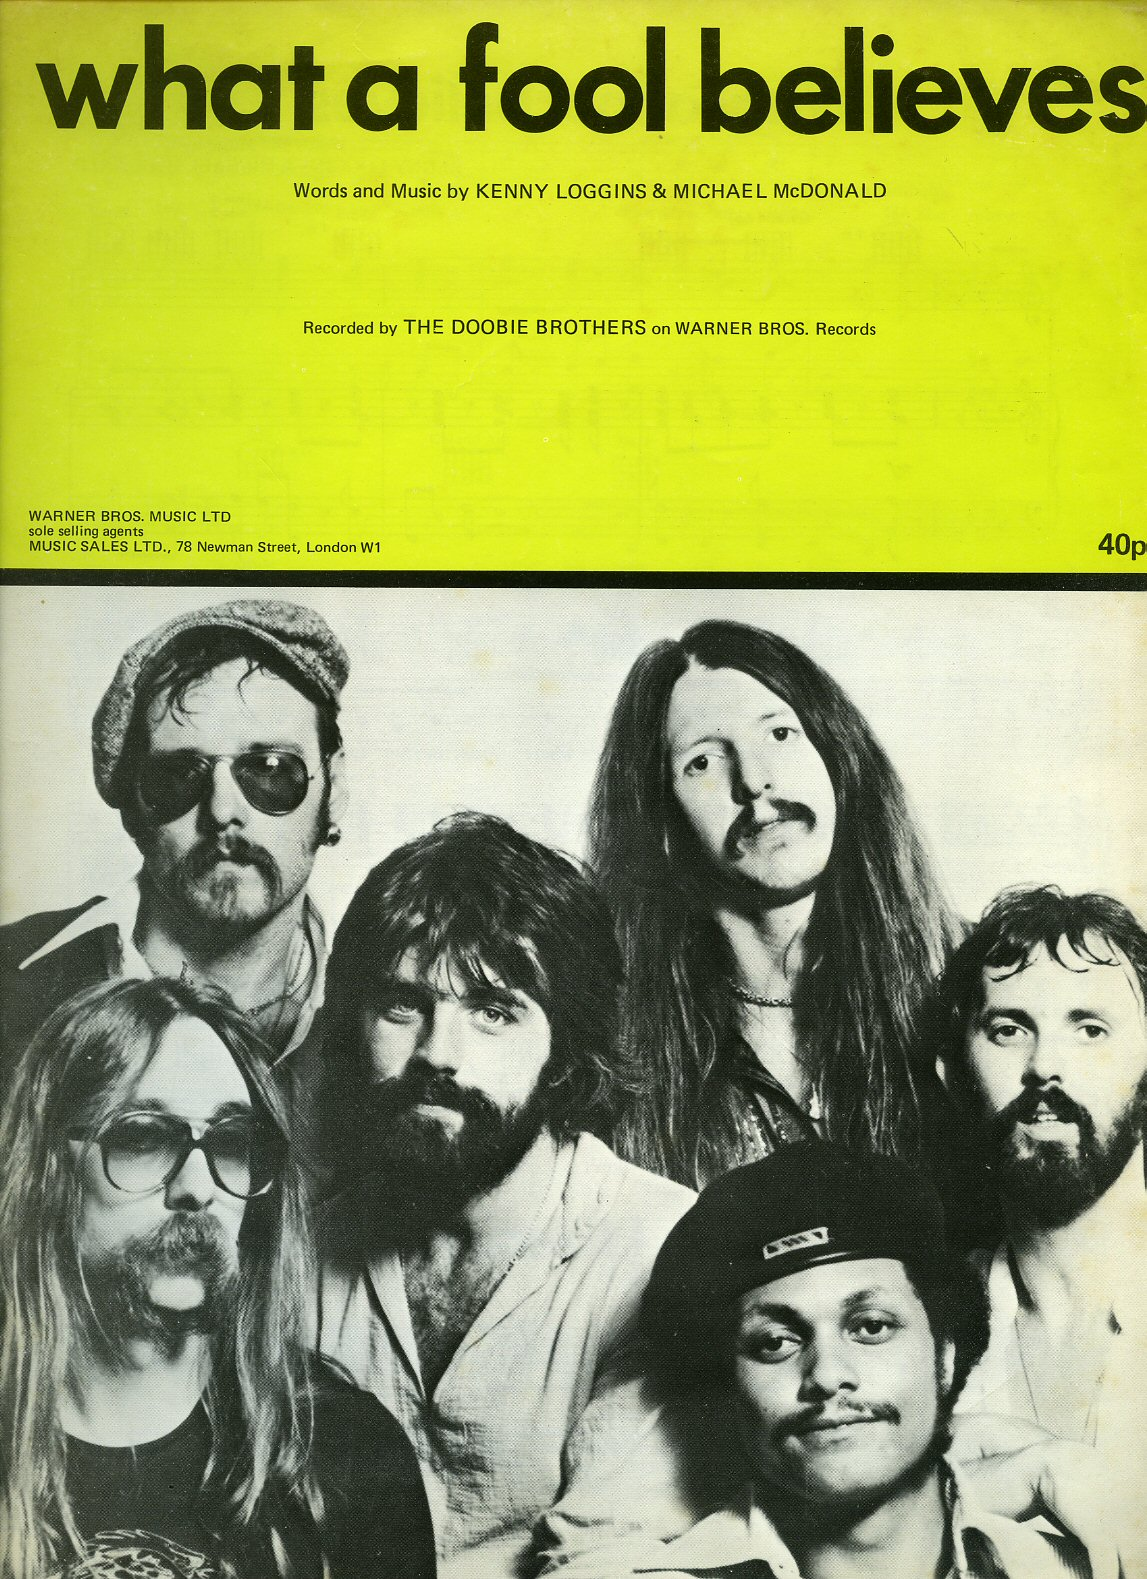 the doobie brothers what a fool believes